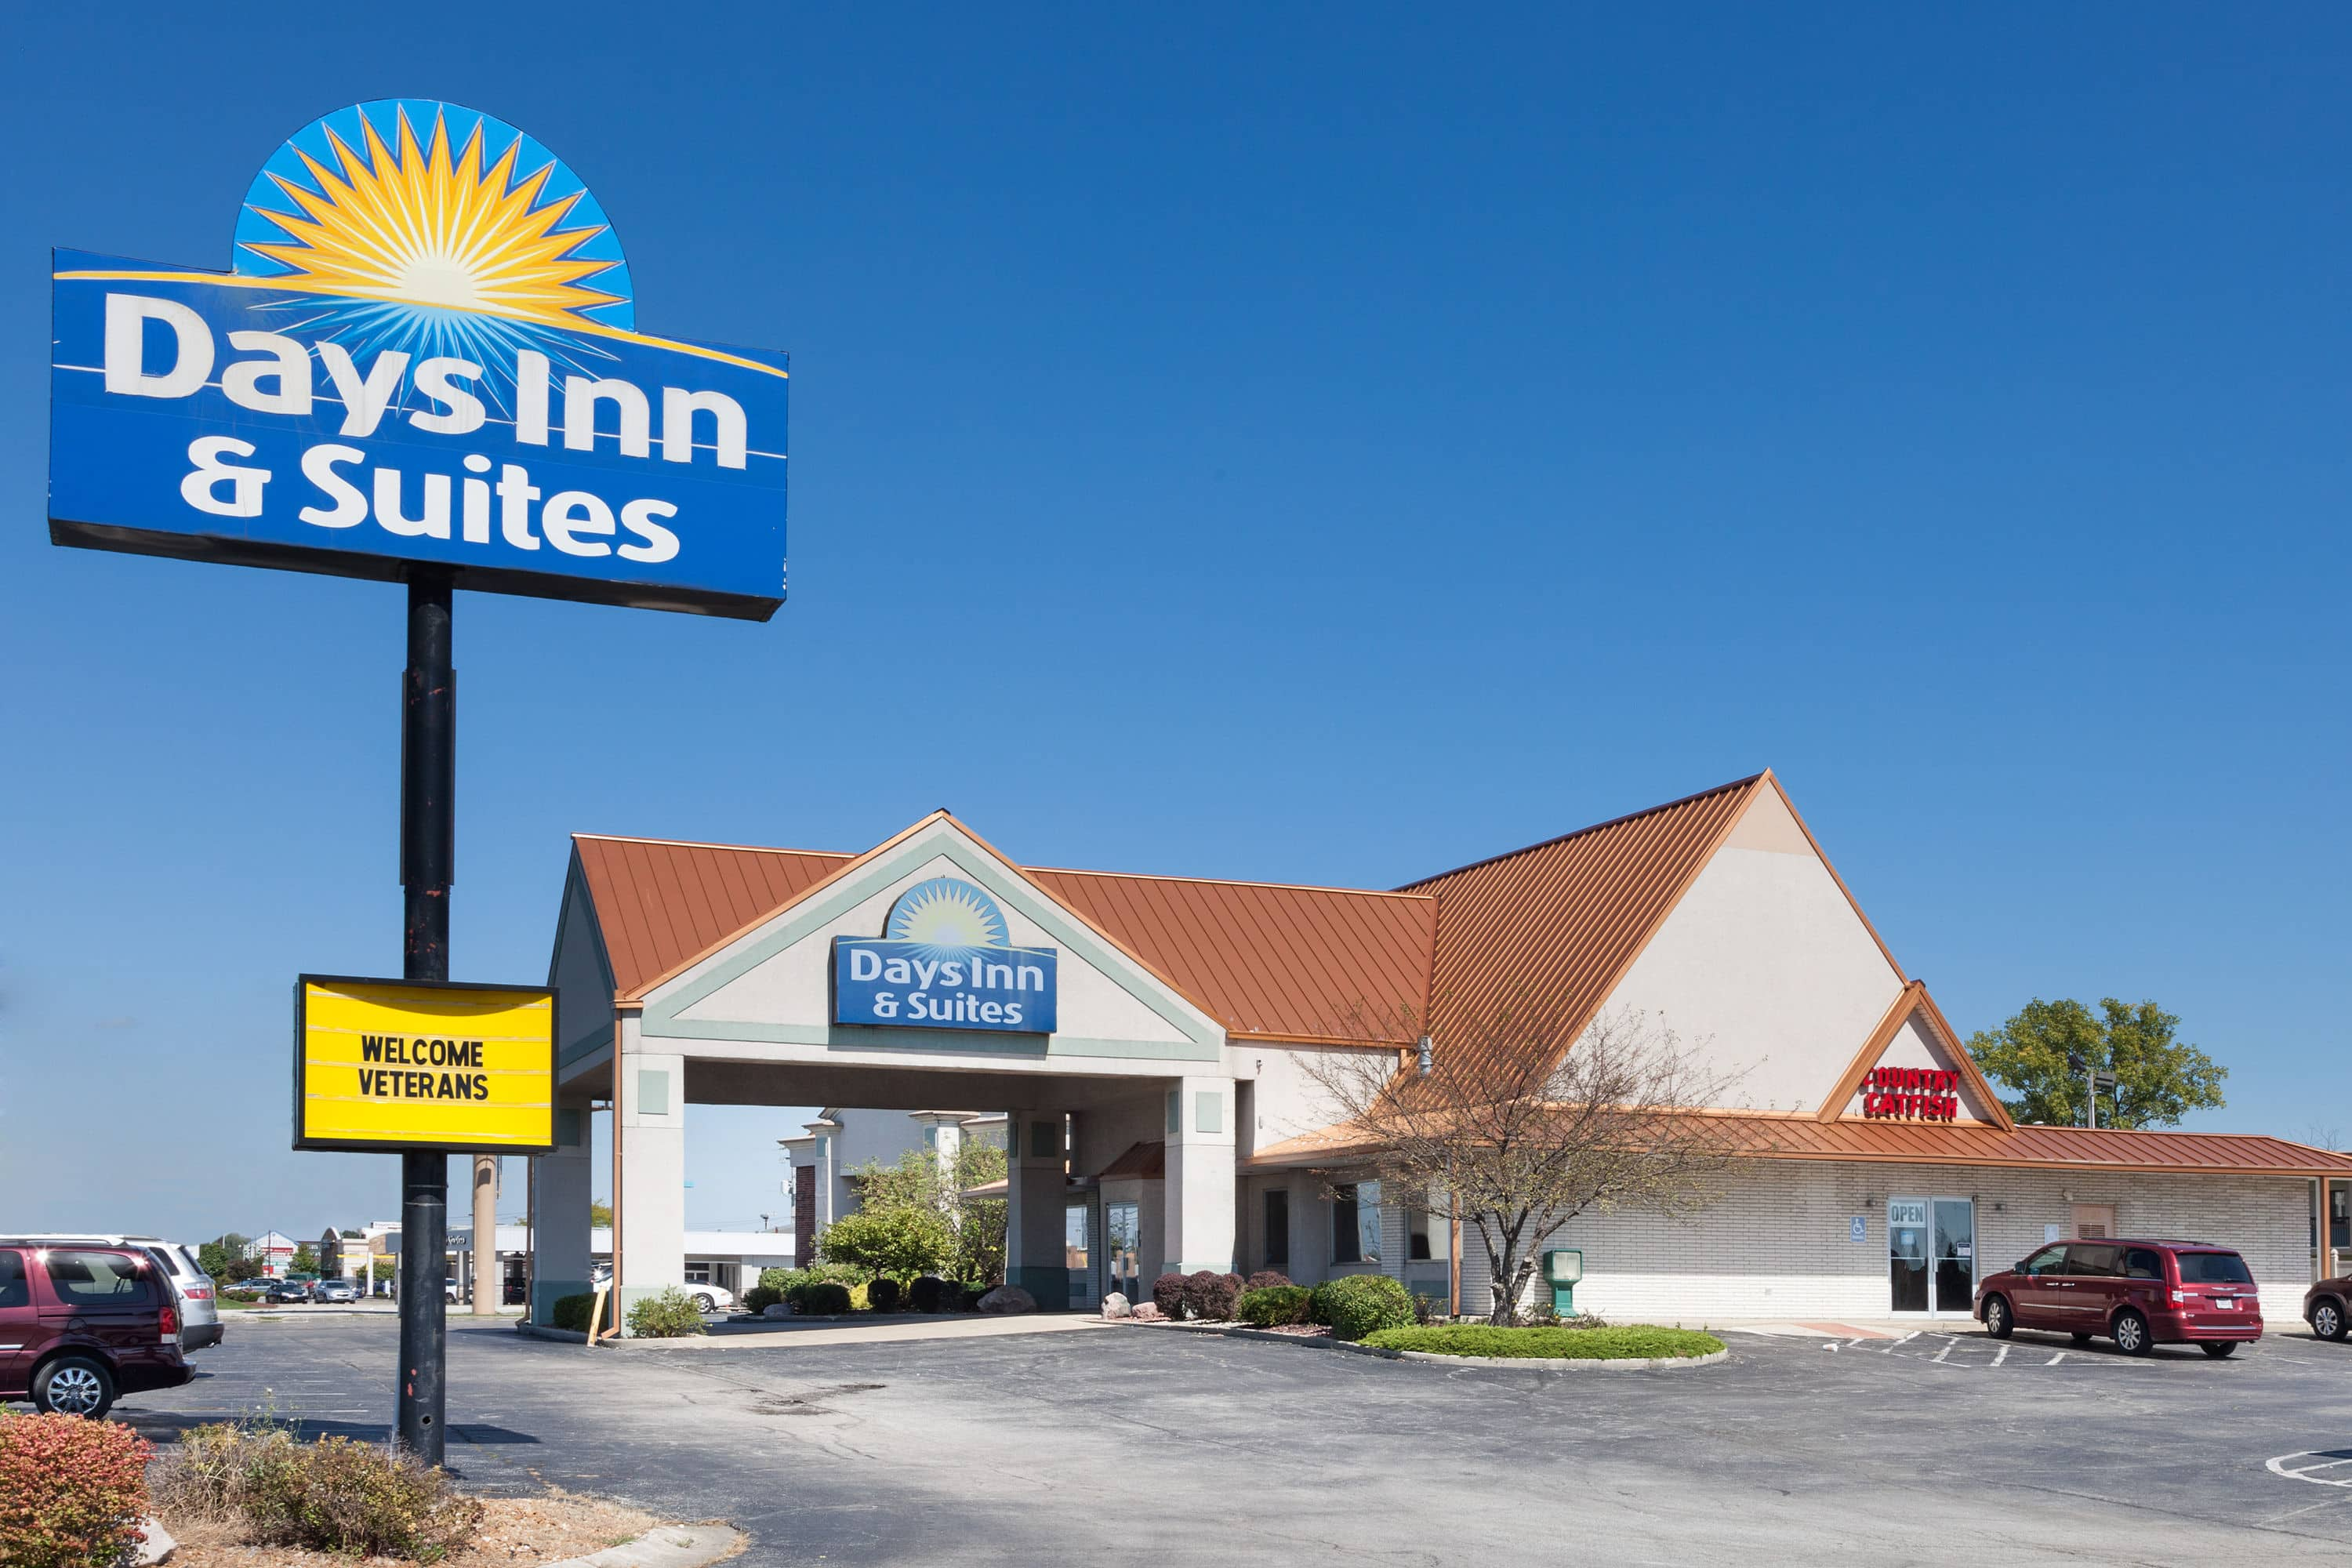 Exterior Of Days Inn U0026 Suites By Wyndham Kokomo Hotel In Kokomo, Indiana